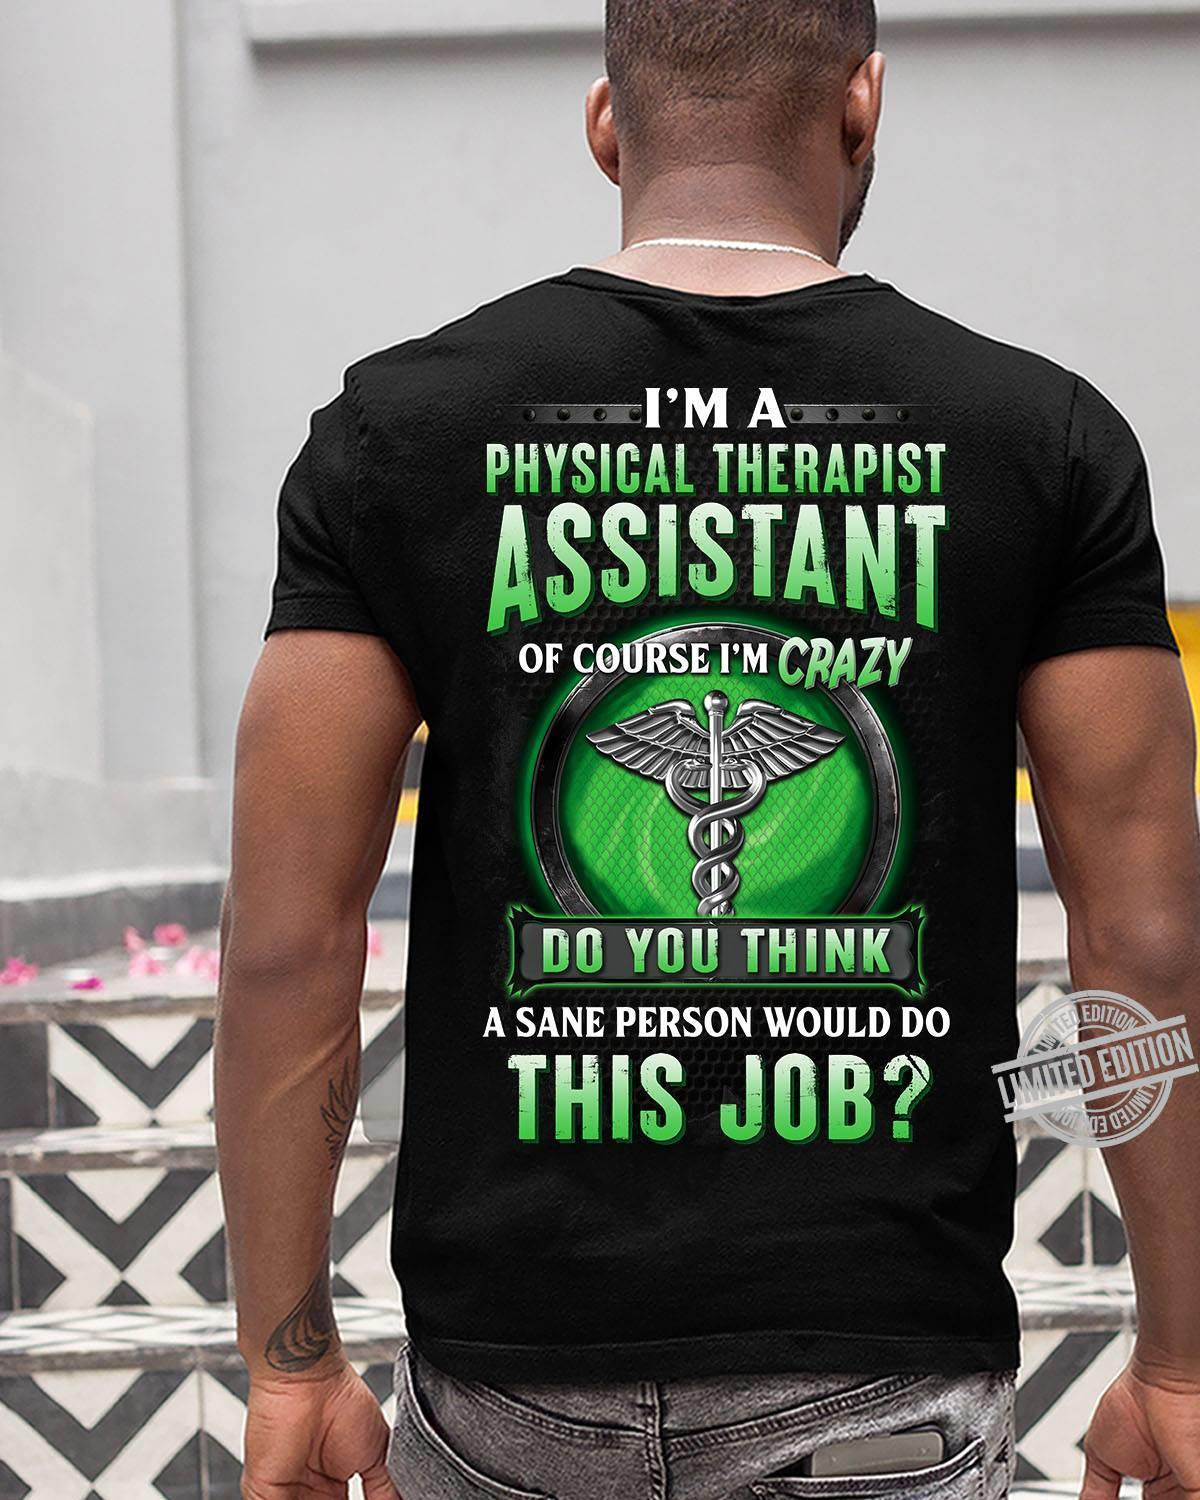 Im an Occupational Therapy Assistant Tee Shirt Design Long Sleeve Shirt